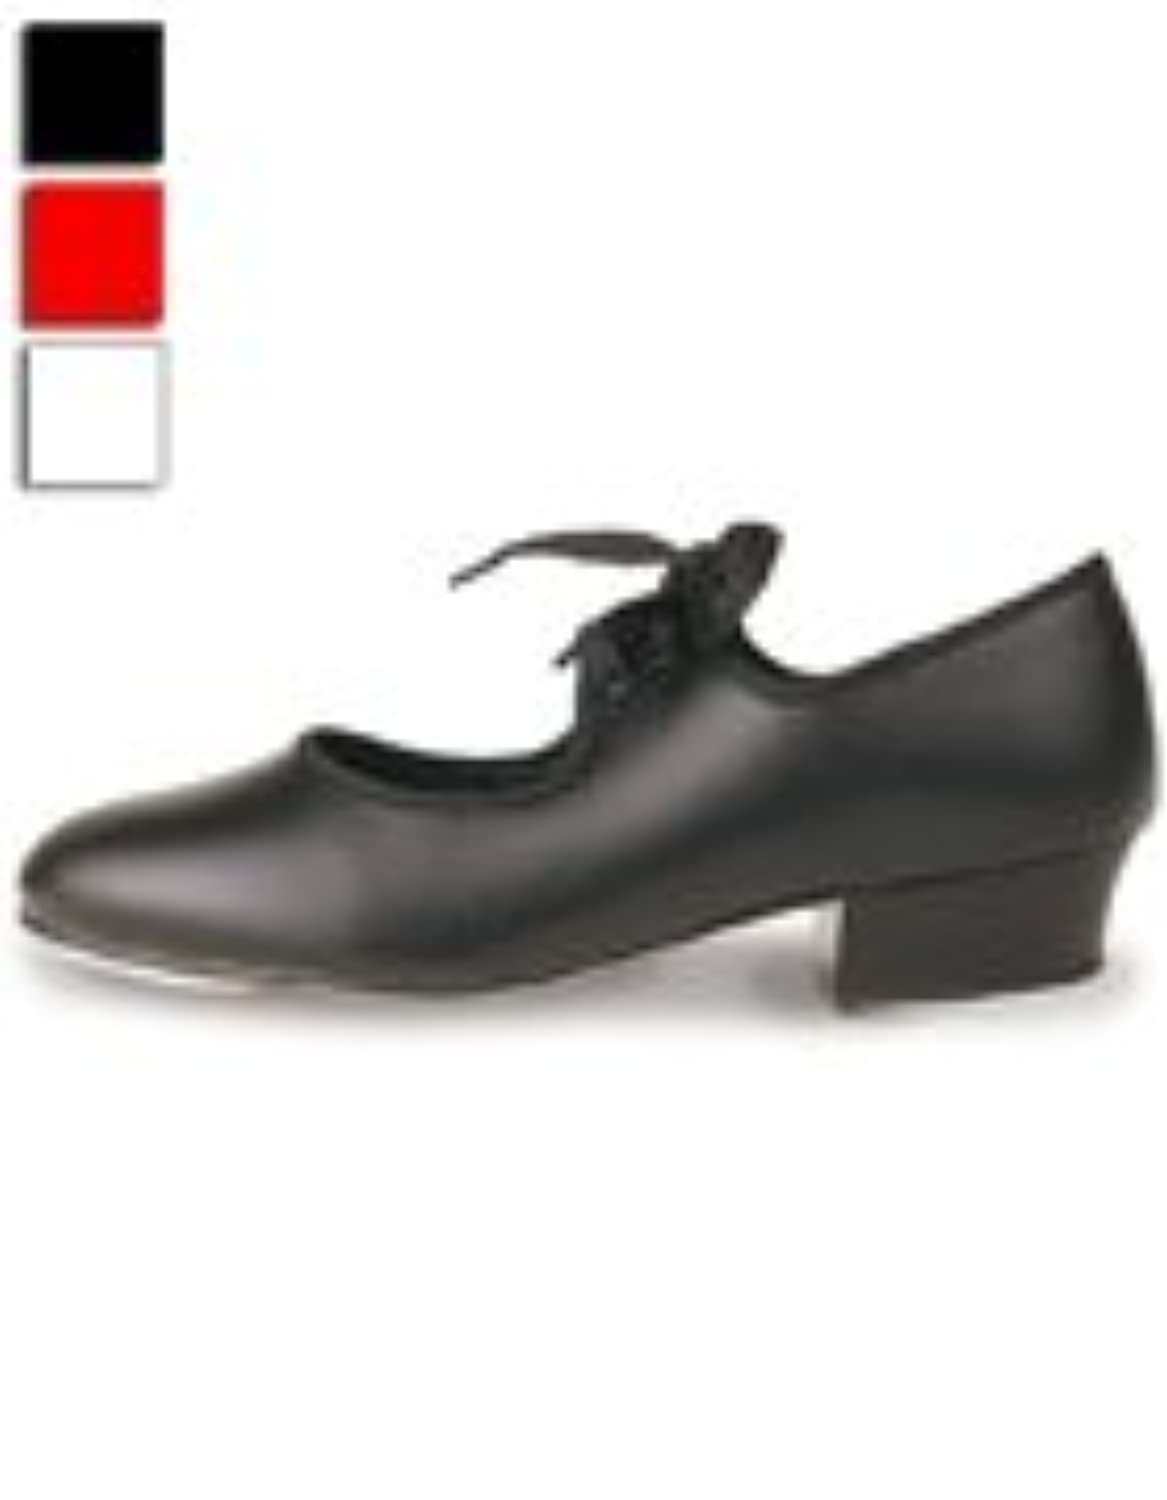 Roch Valley 'LHP' Tap Shoes Black 1 UK / 33 EU